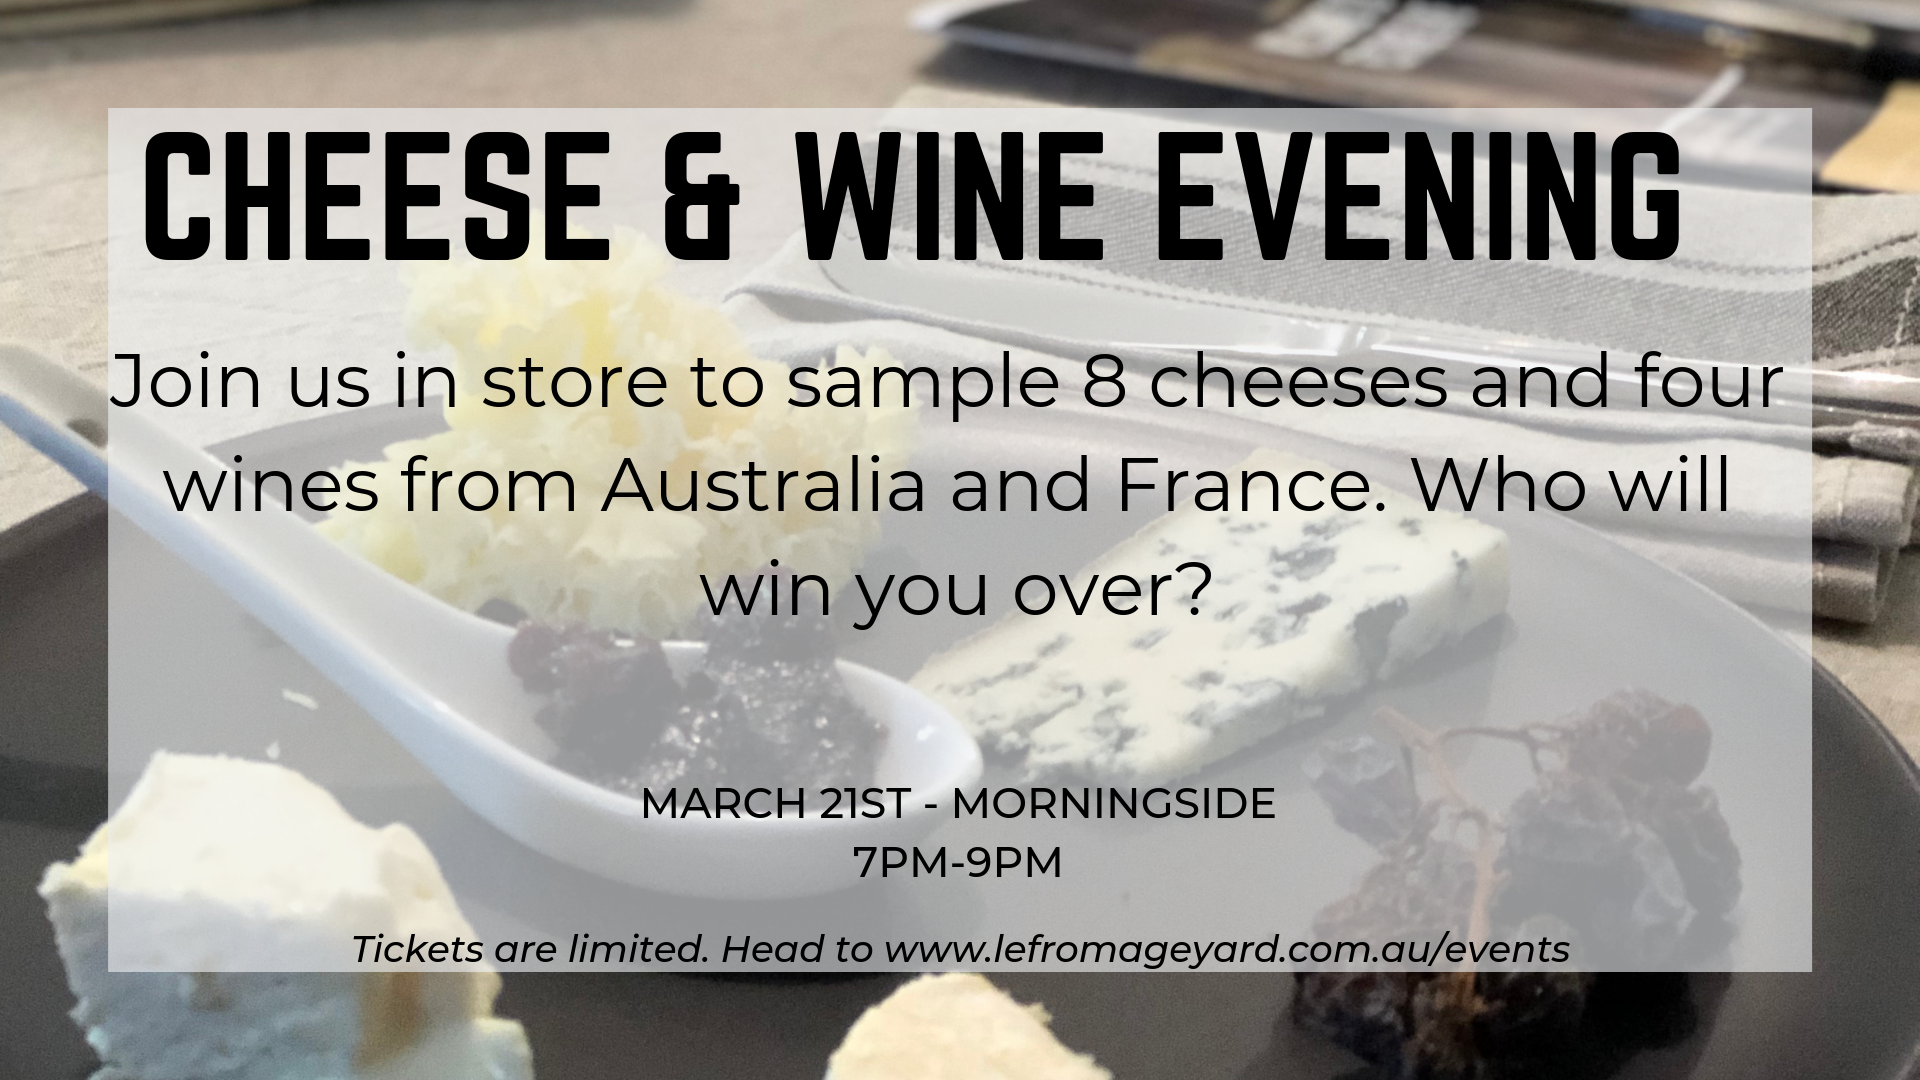 cheese-wine-evening-facebook-event-cover.png